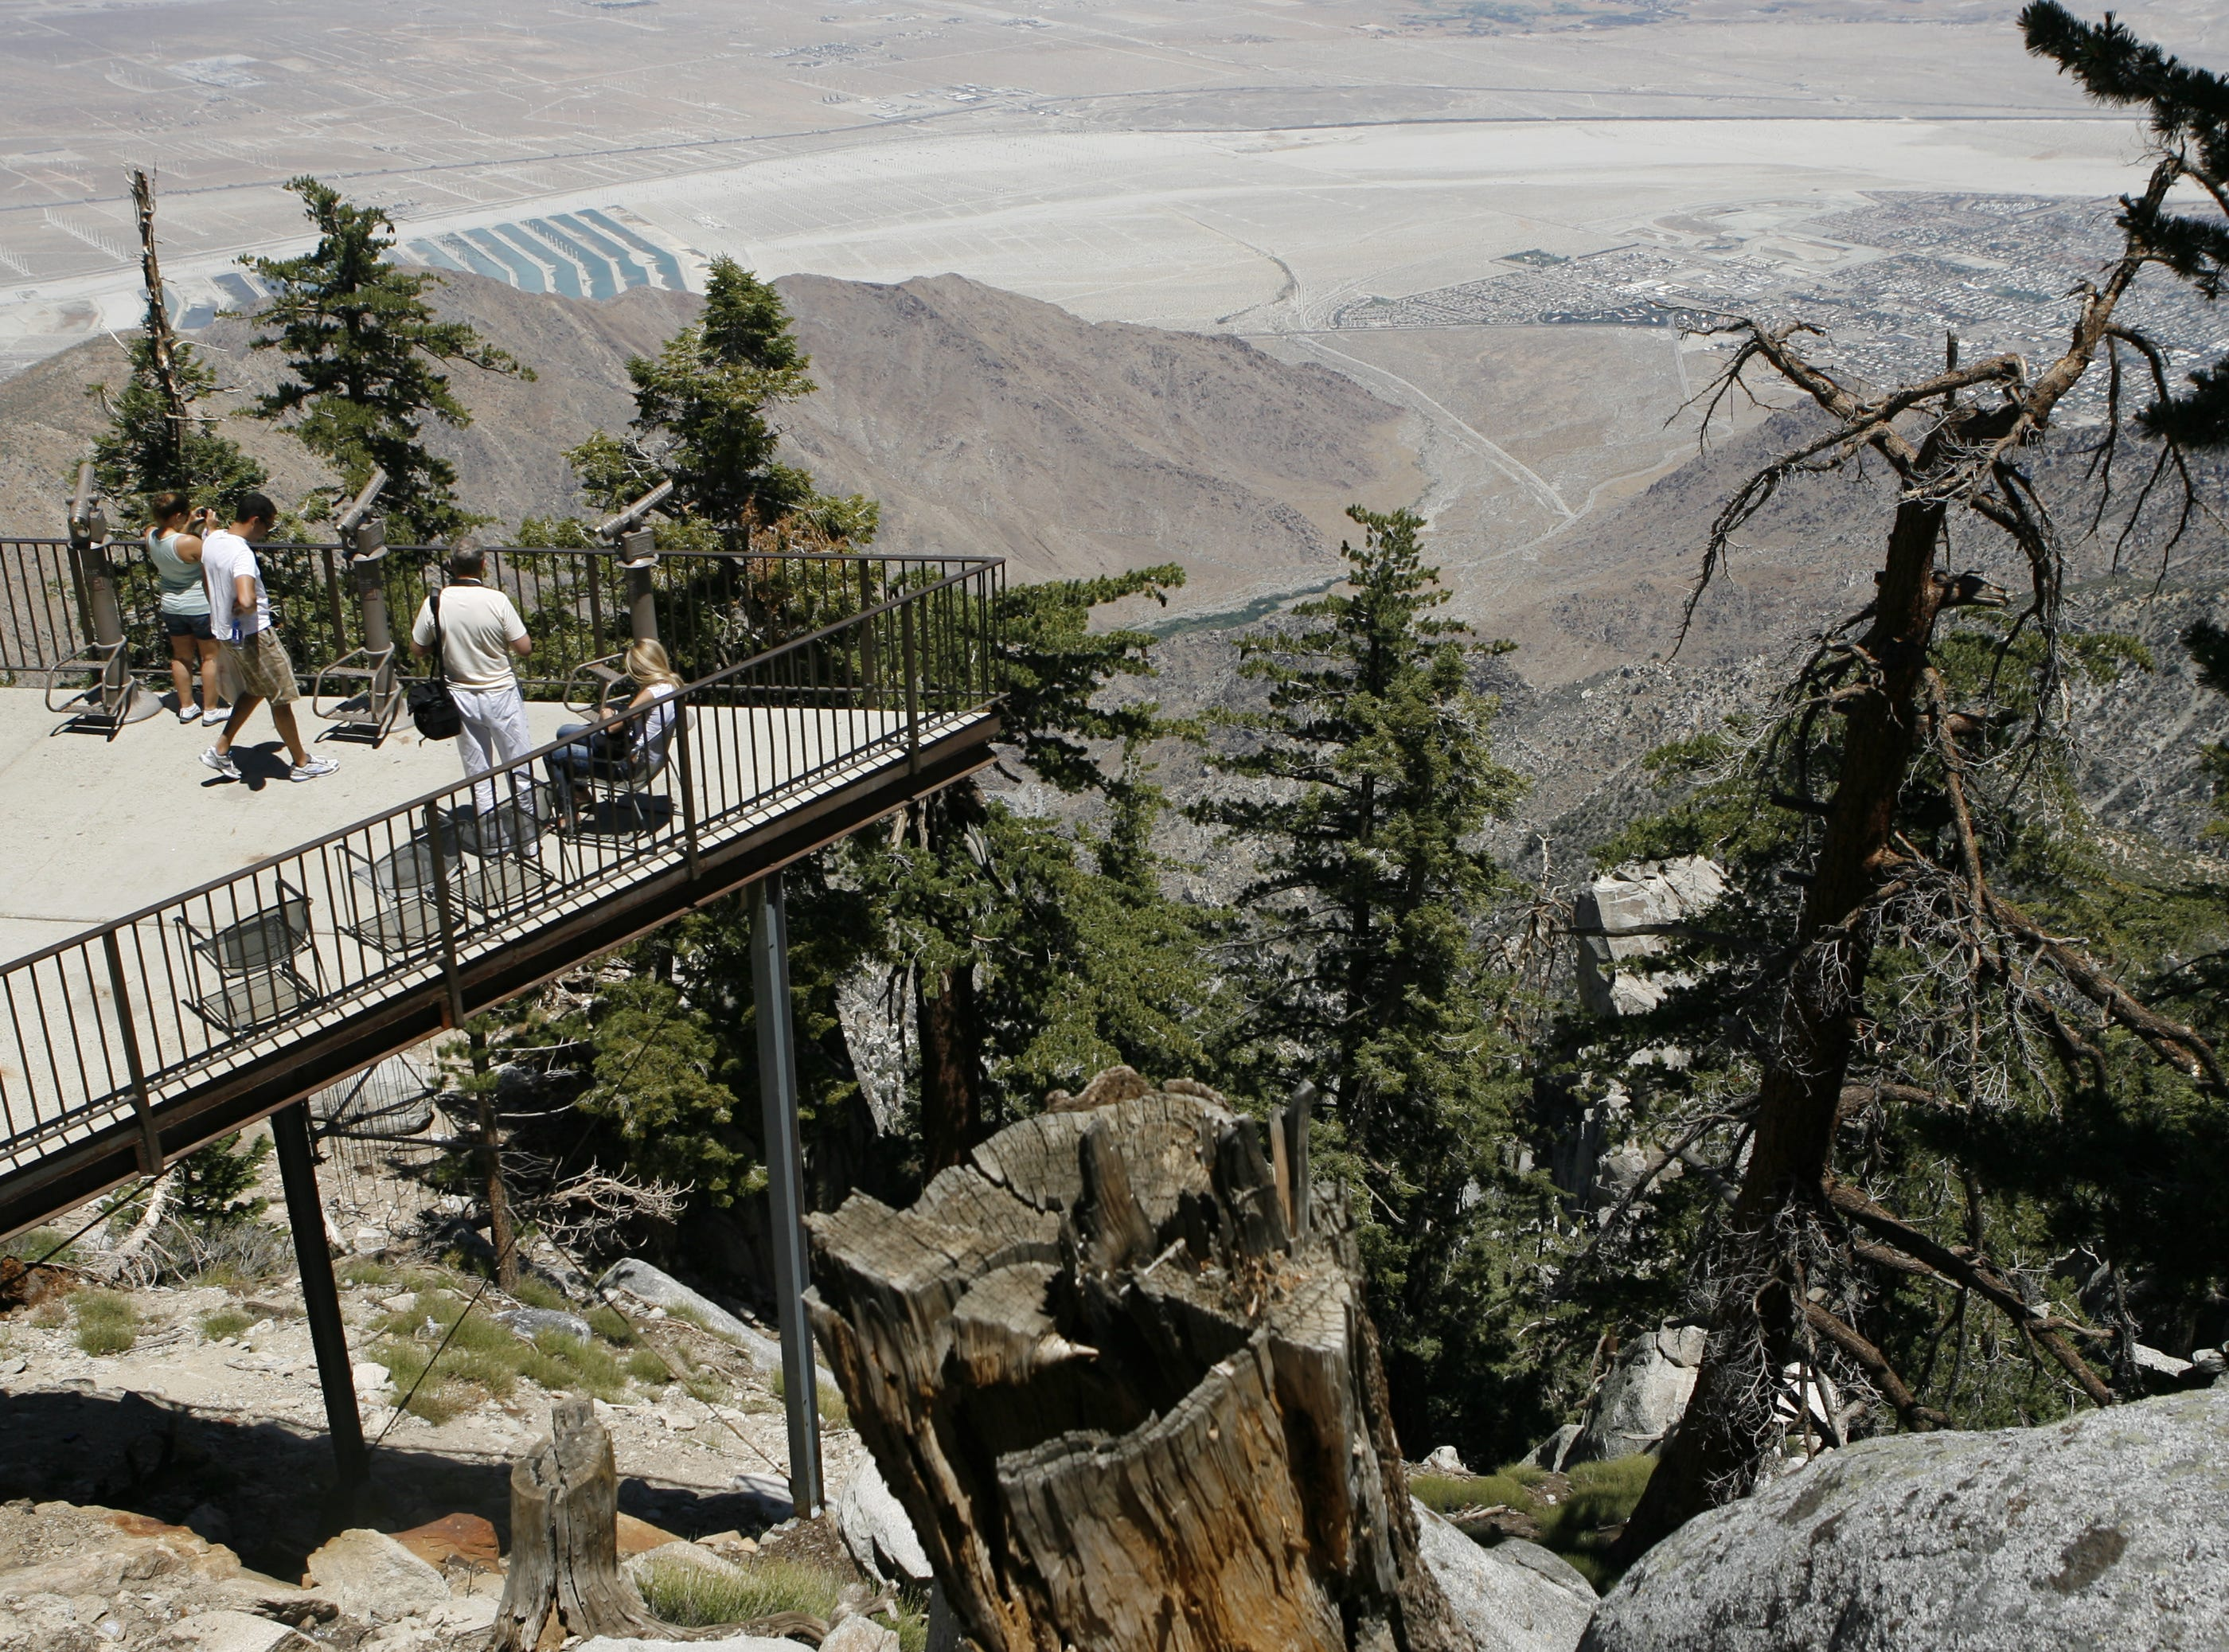 Palm Springs Aerial Tramway visitors see the Coachella Valley from the mountain station on Aug. 3, 2011.